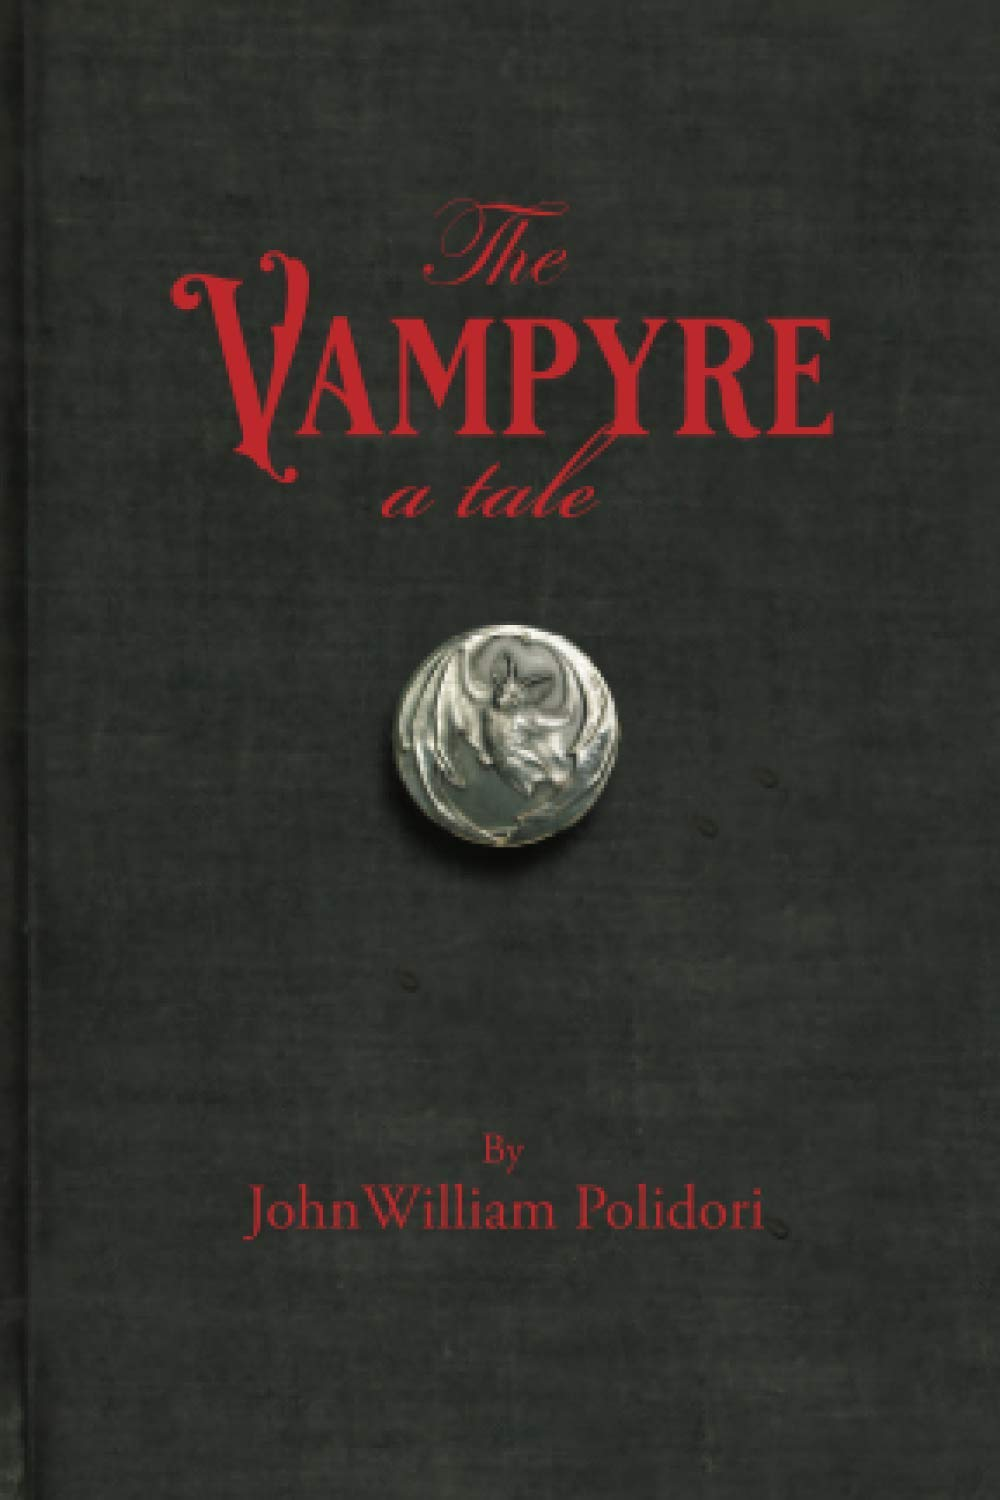 The Vampyre, A Tale: A House Of Pomegranates Esoteric Edition